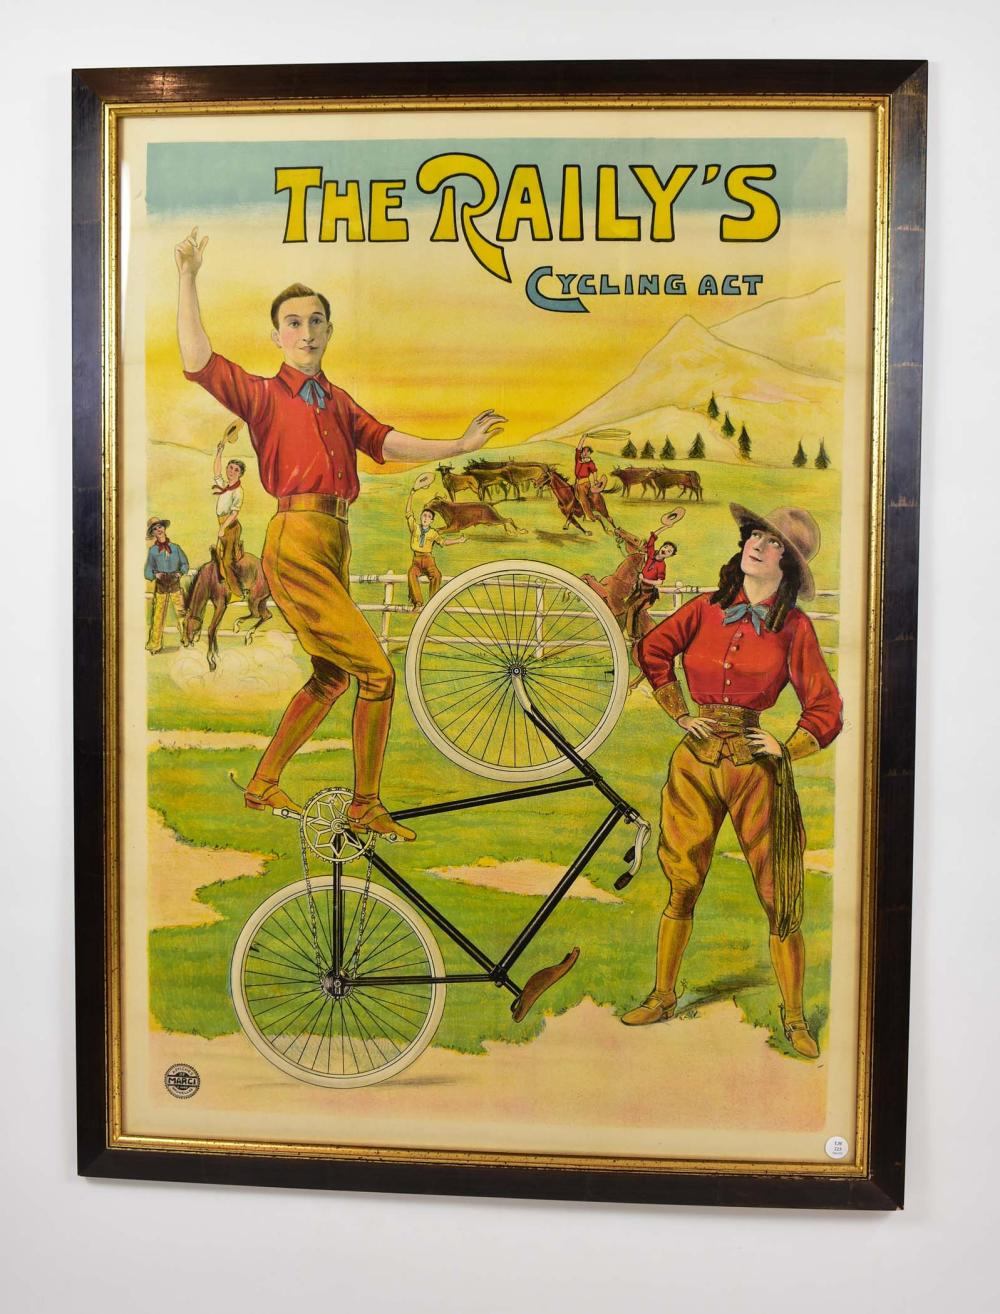 THE RAILYS CYCLING ACT